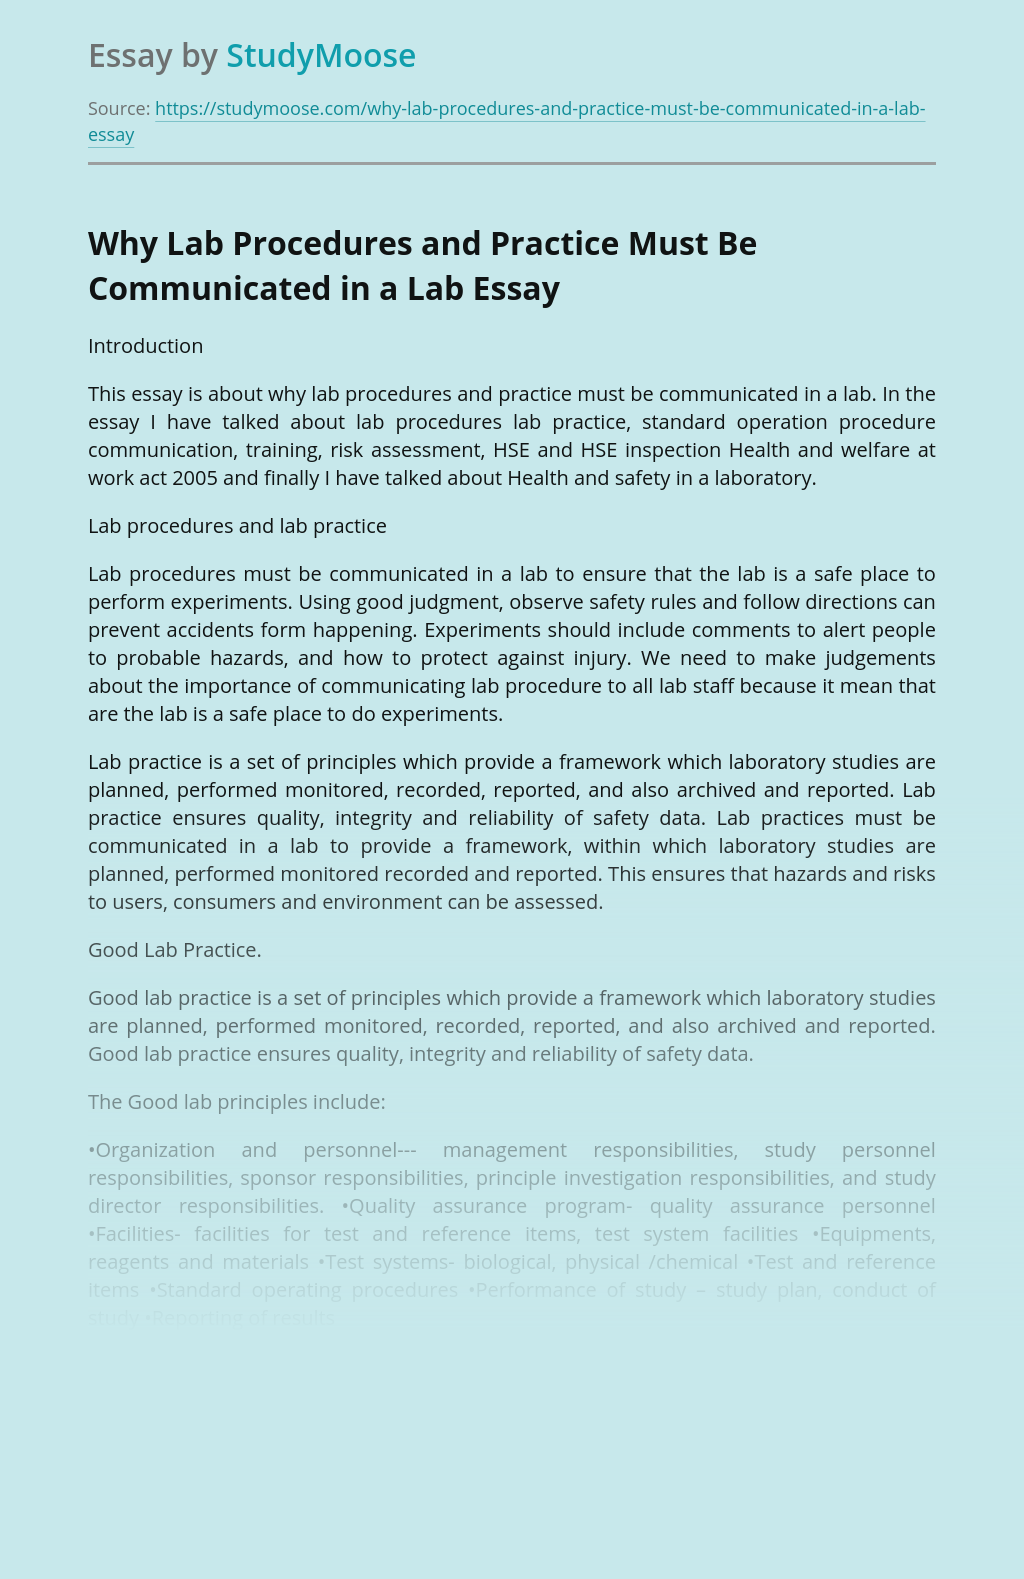 Why Lab Procedures and Practice Must Be Communicated in a Lab